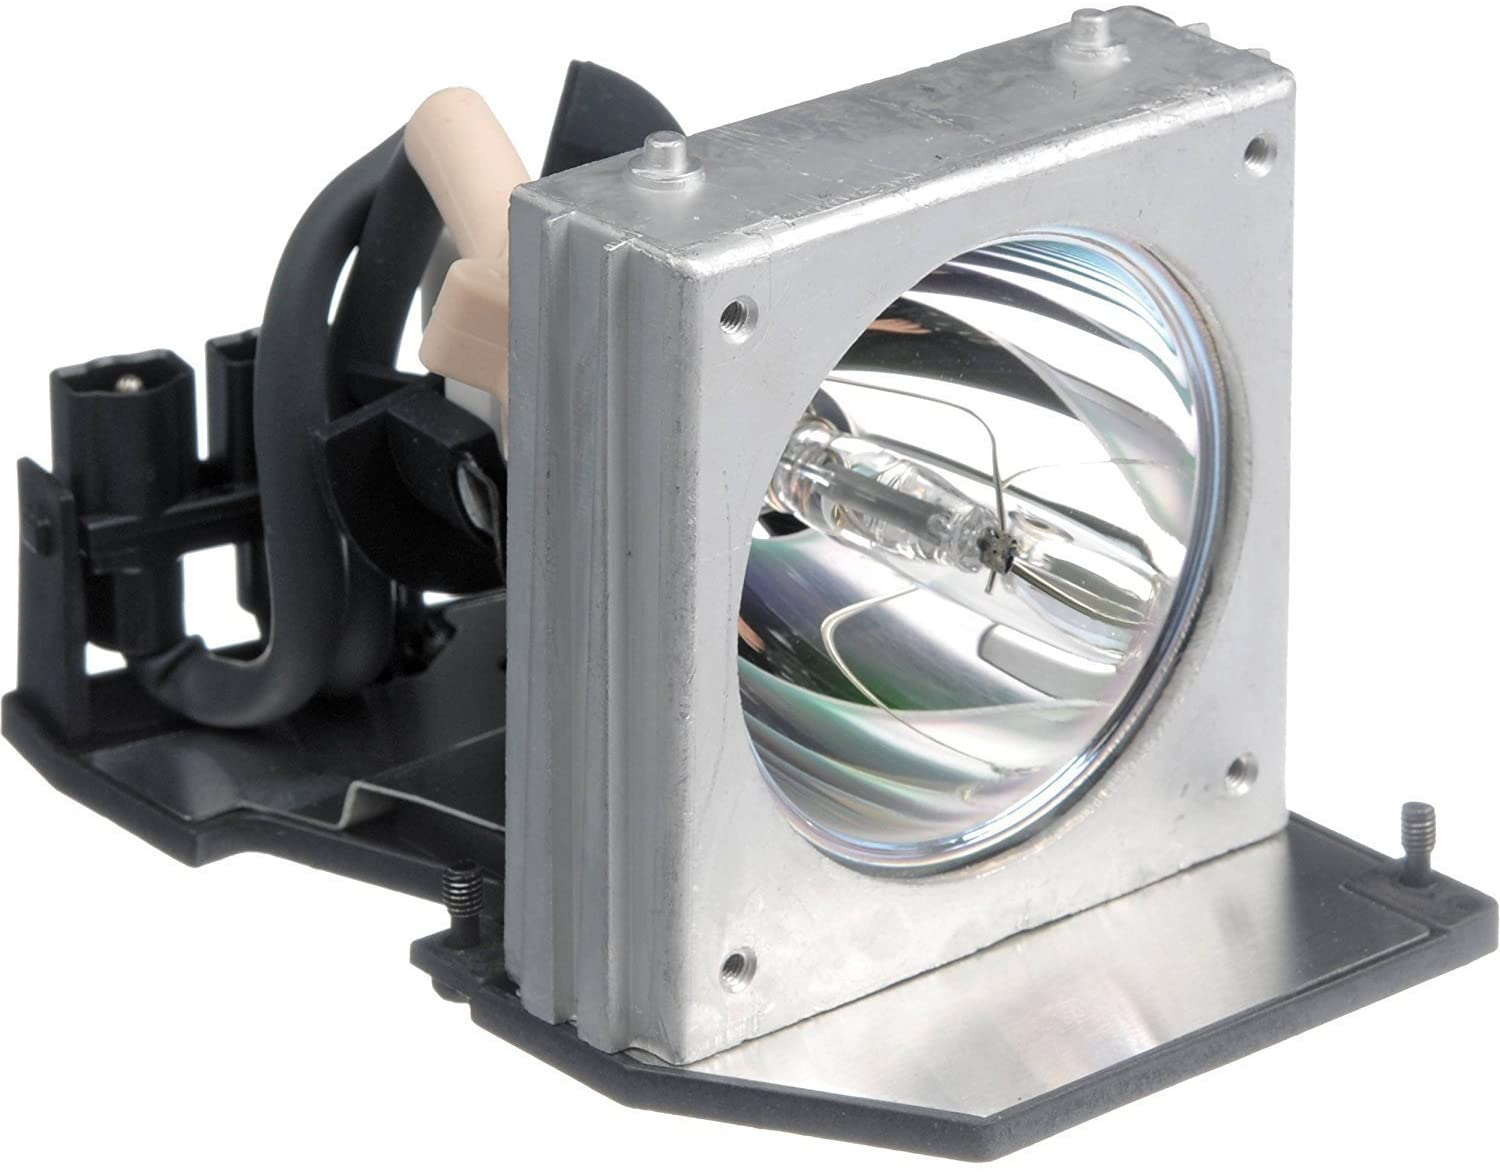 QueenYii BL-FP200C SP.85S01G.C01 Compatible for OPTOMA HD32 Replacement Projector Lamp with Bulb Inside